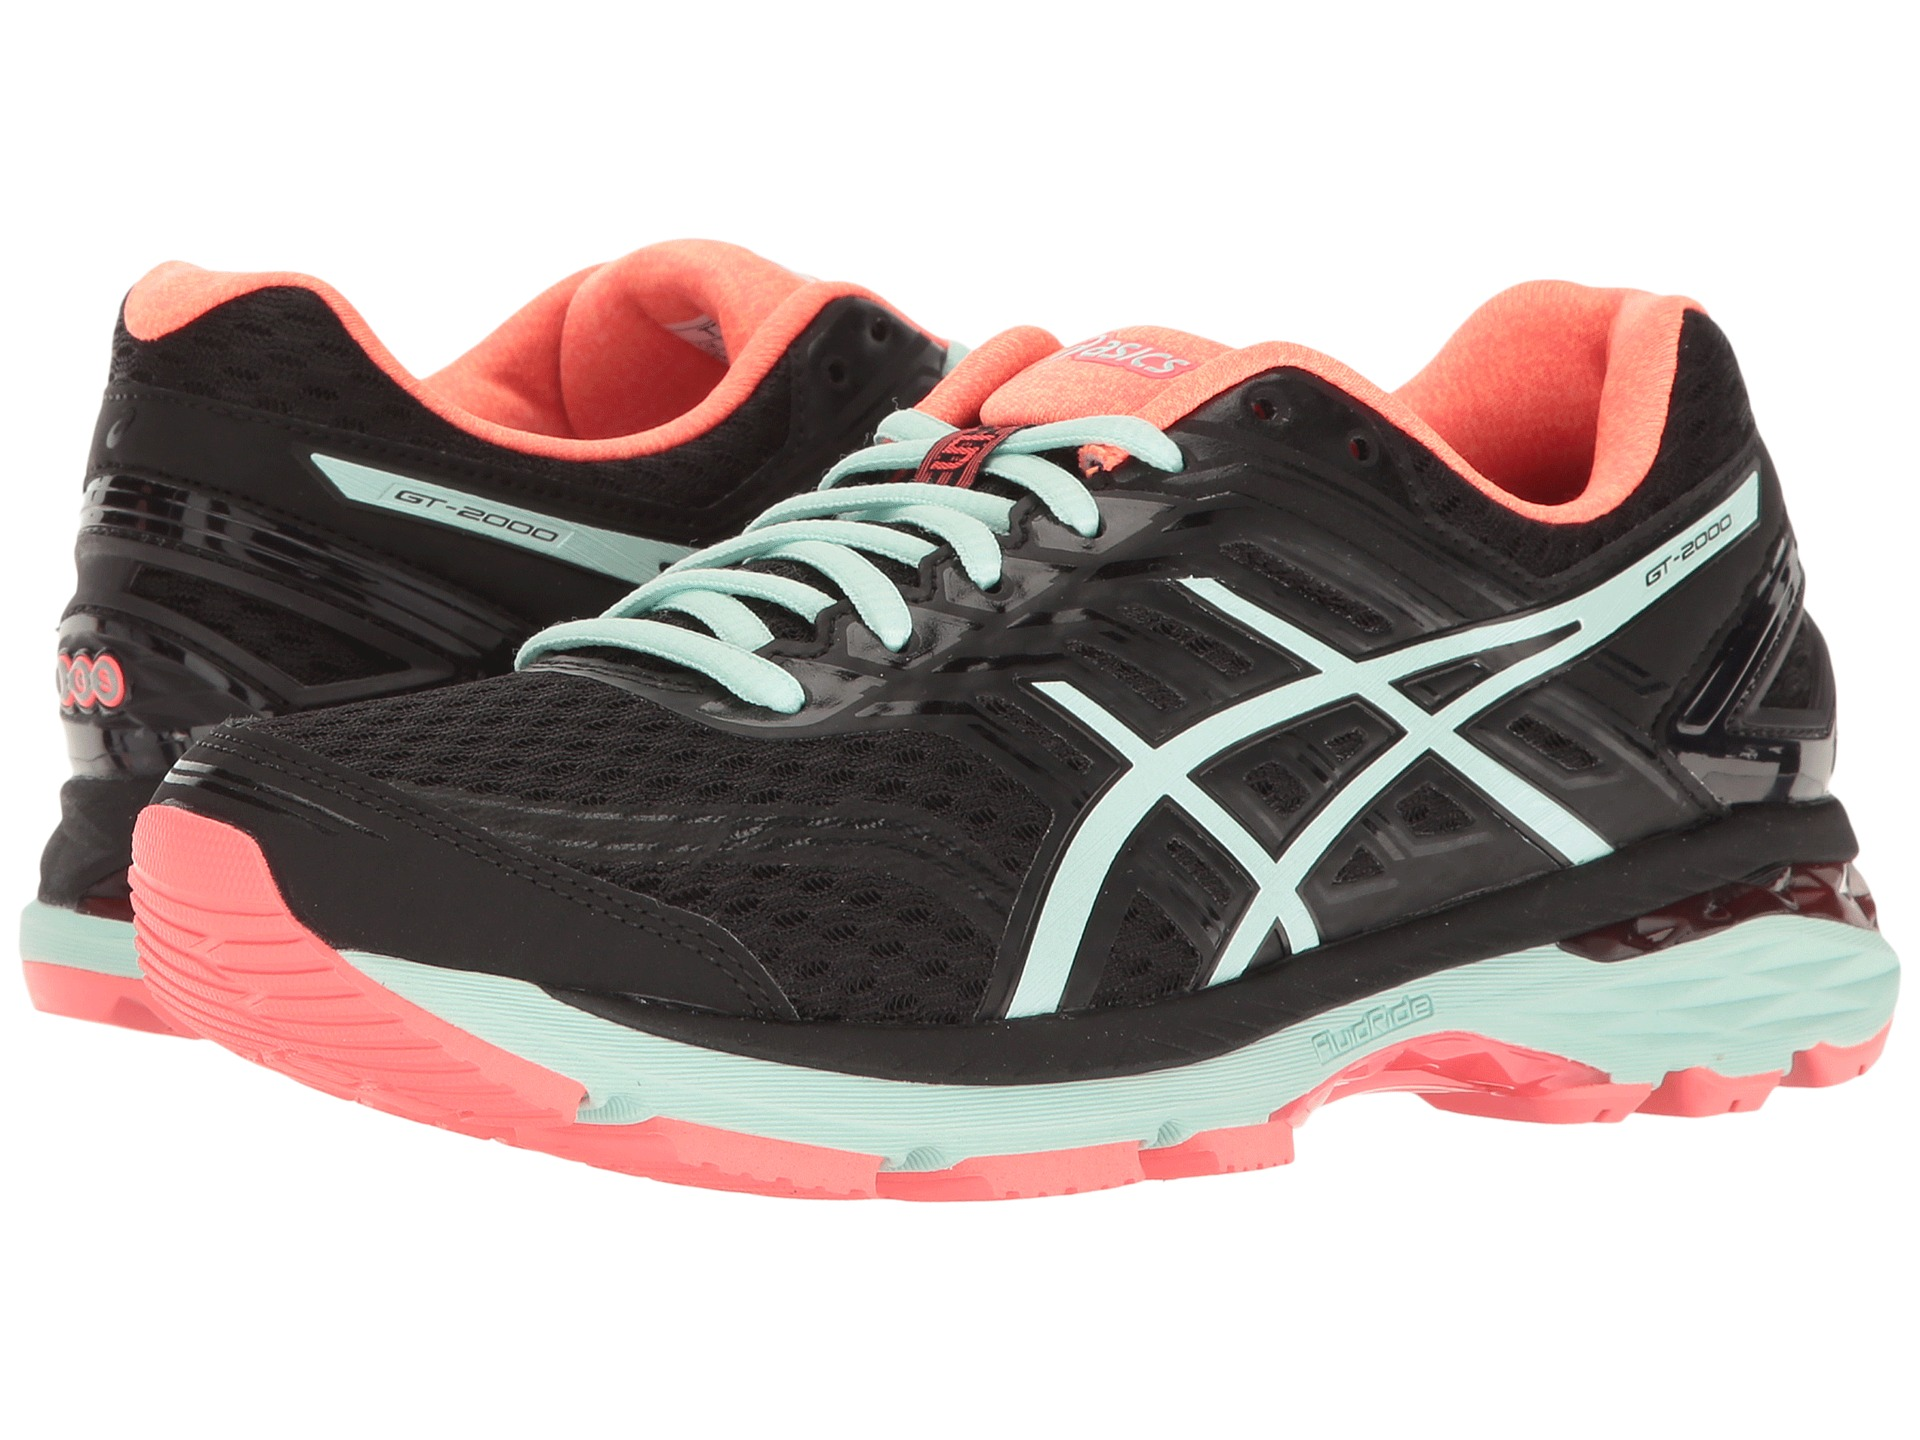 What Is The Best Asics Running Shoe For Me